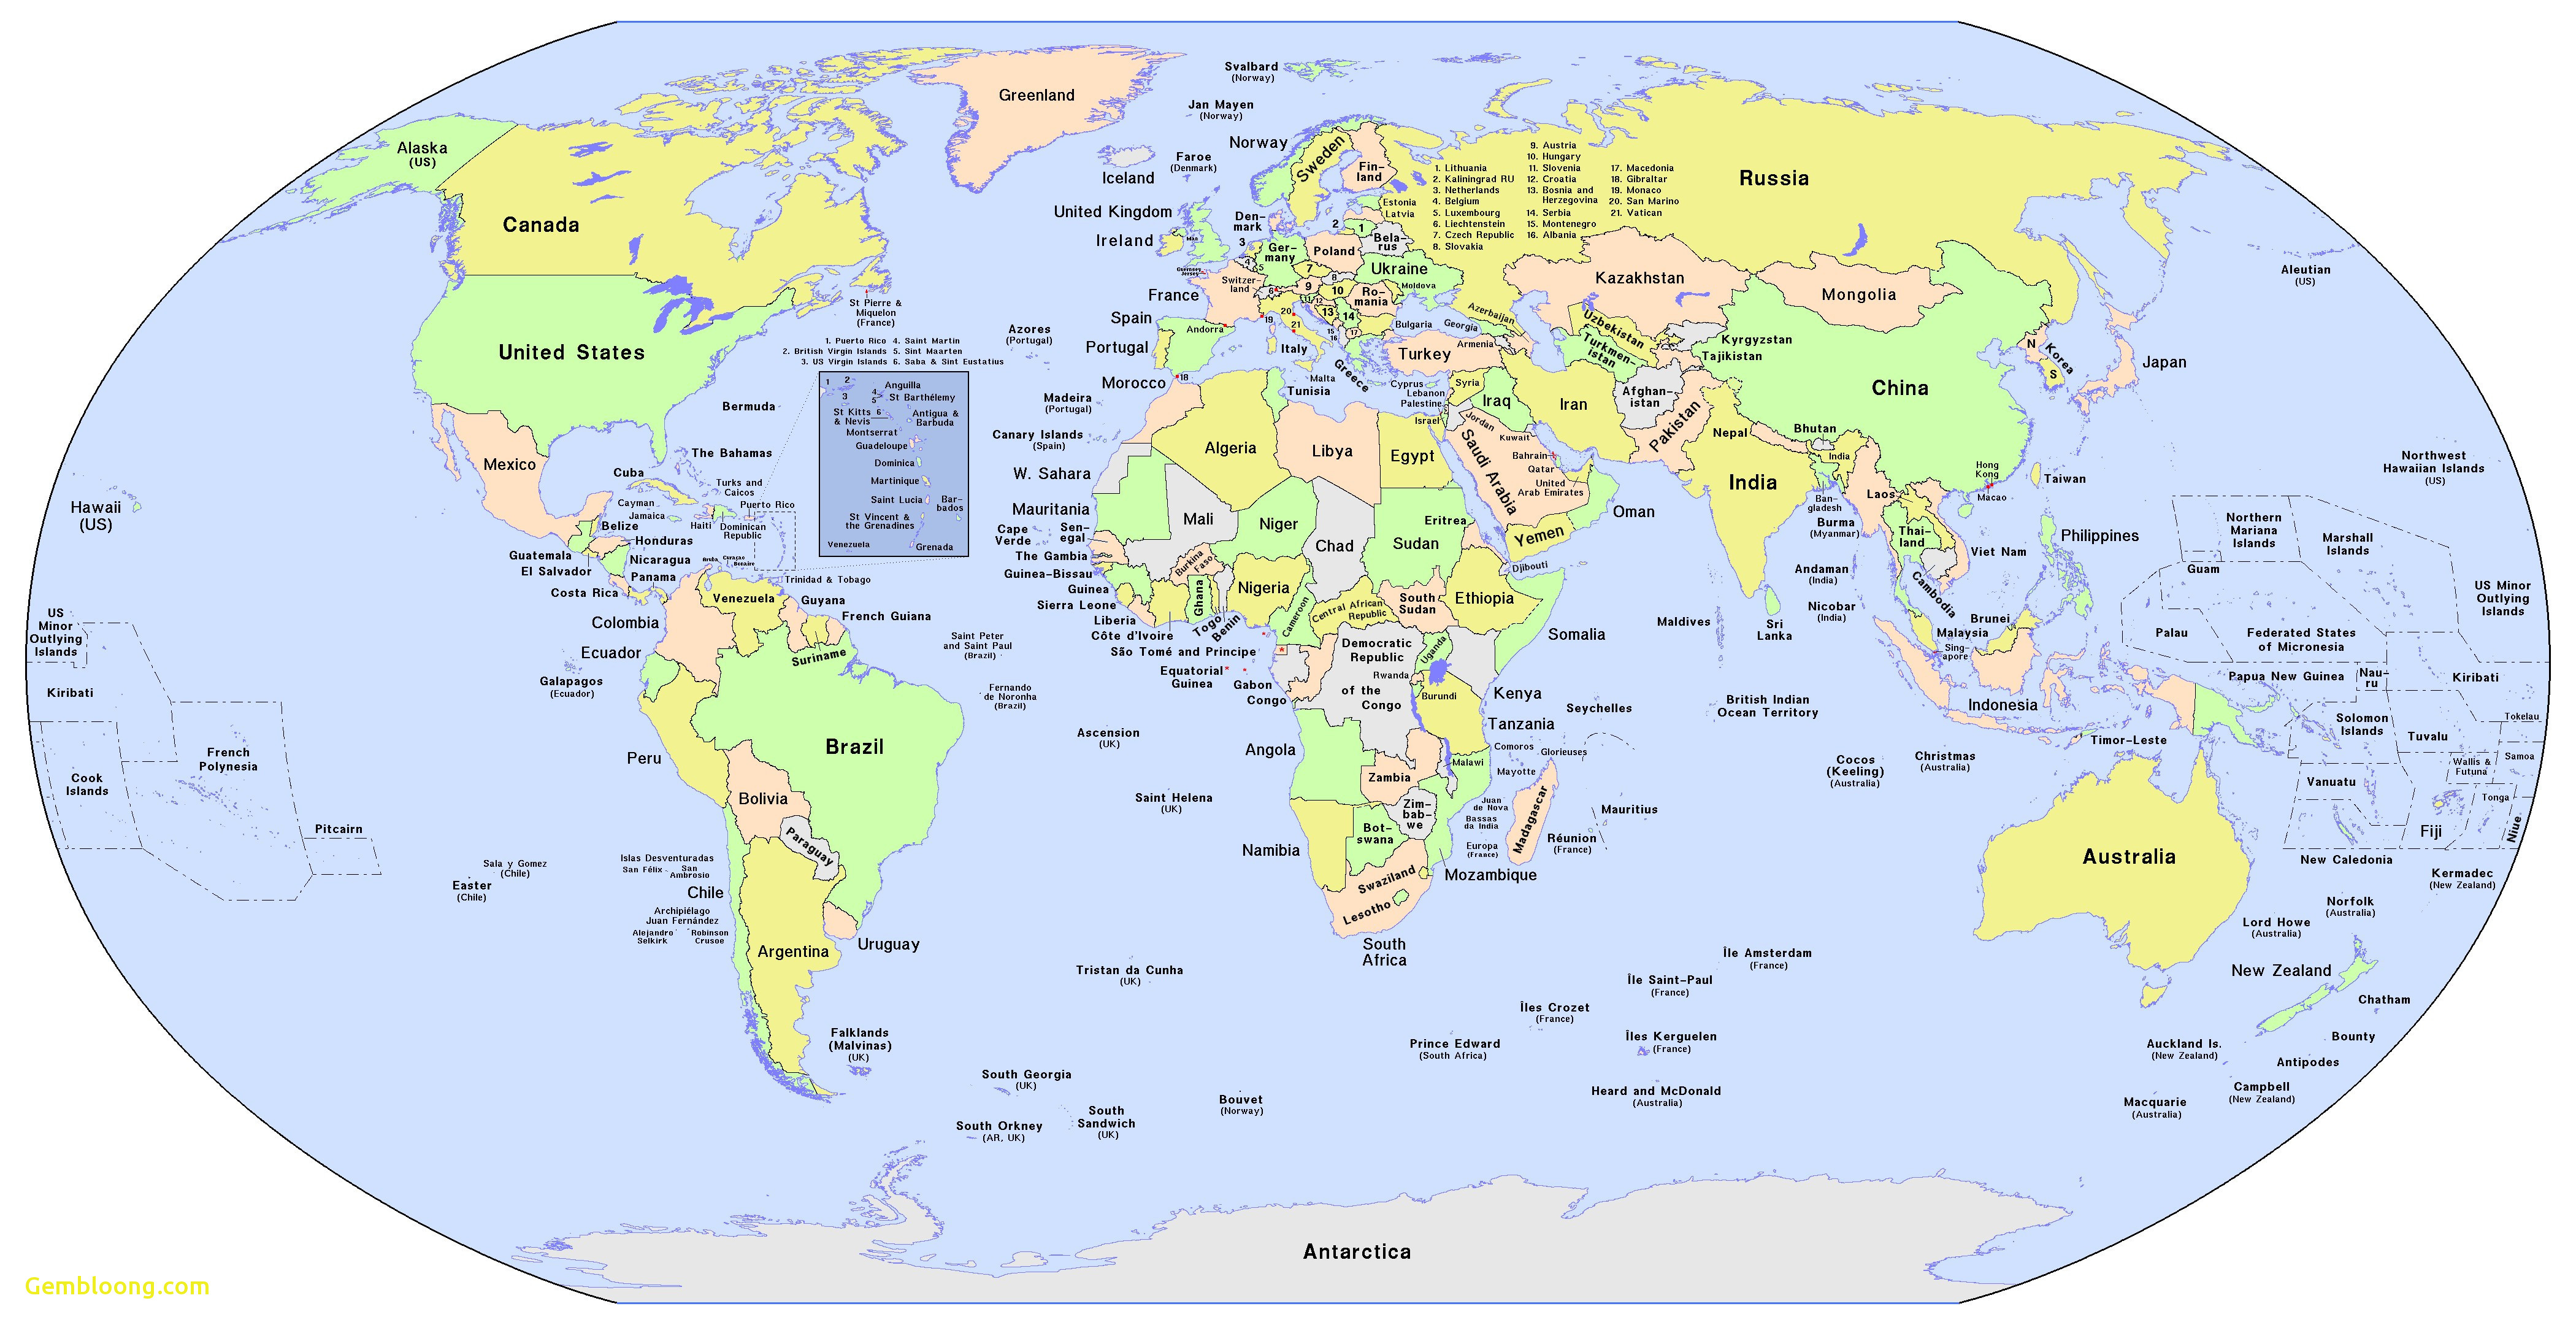 Printable World Maps With Countries - Tuquyhai - World Map Printable With Country Names